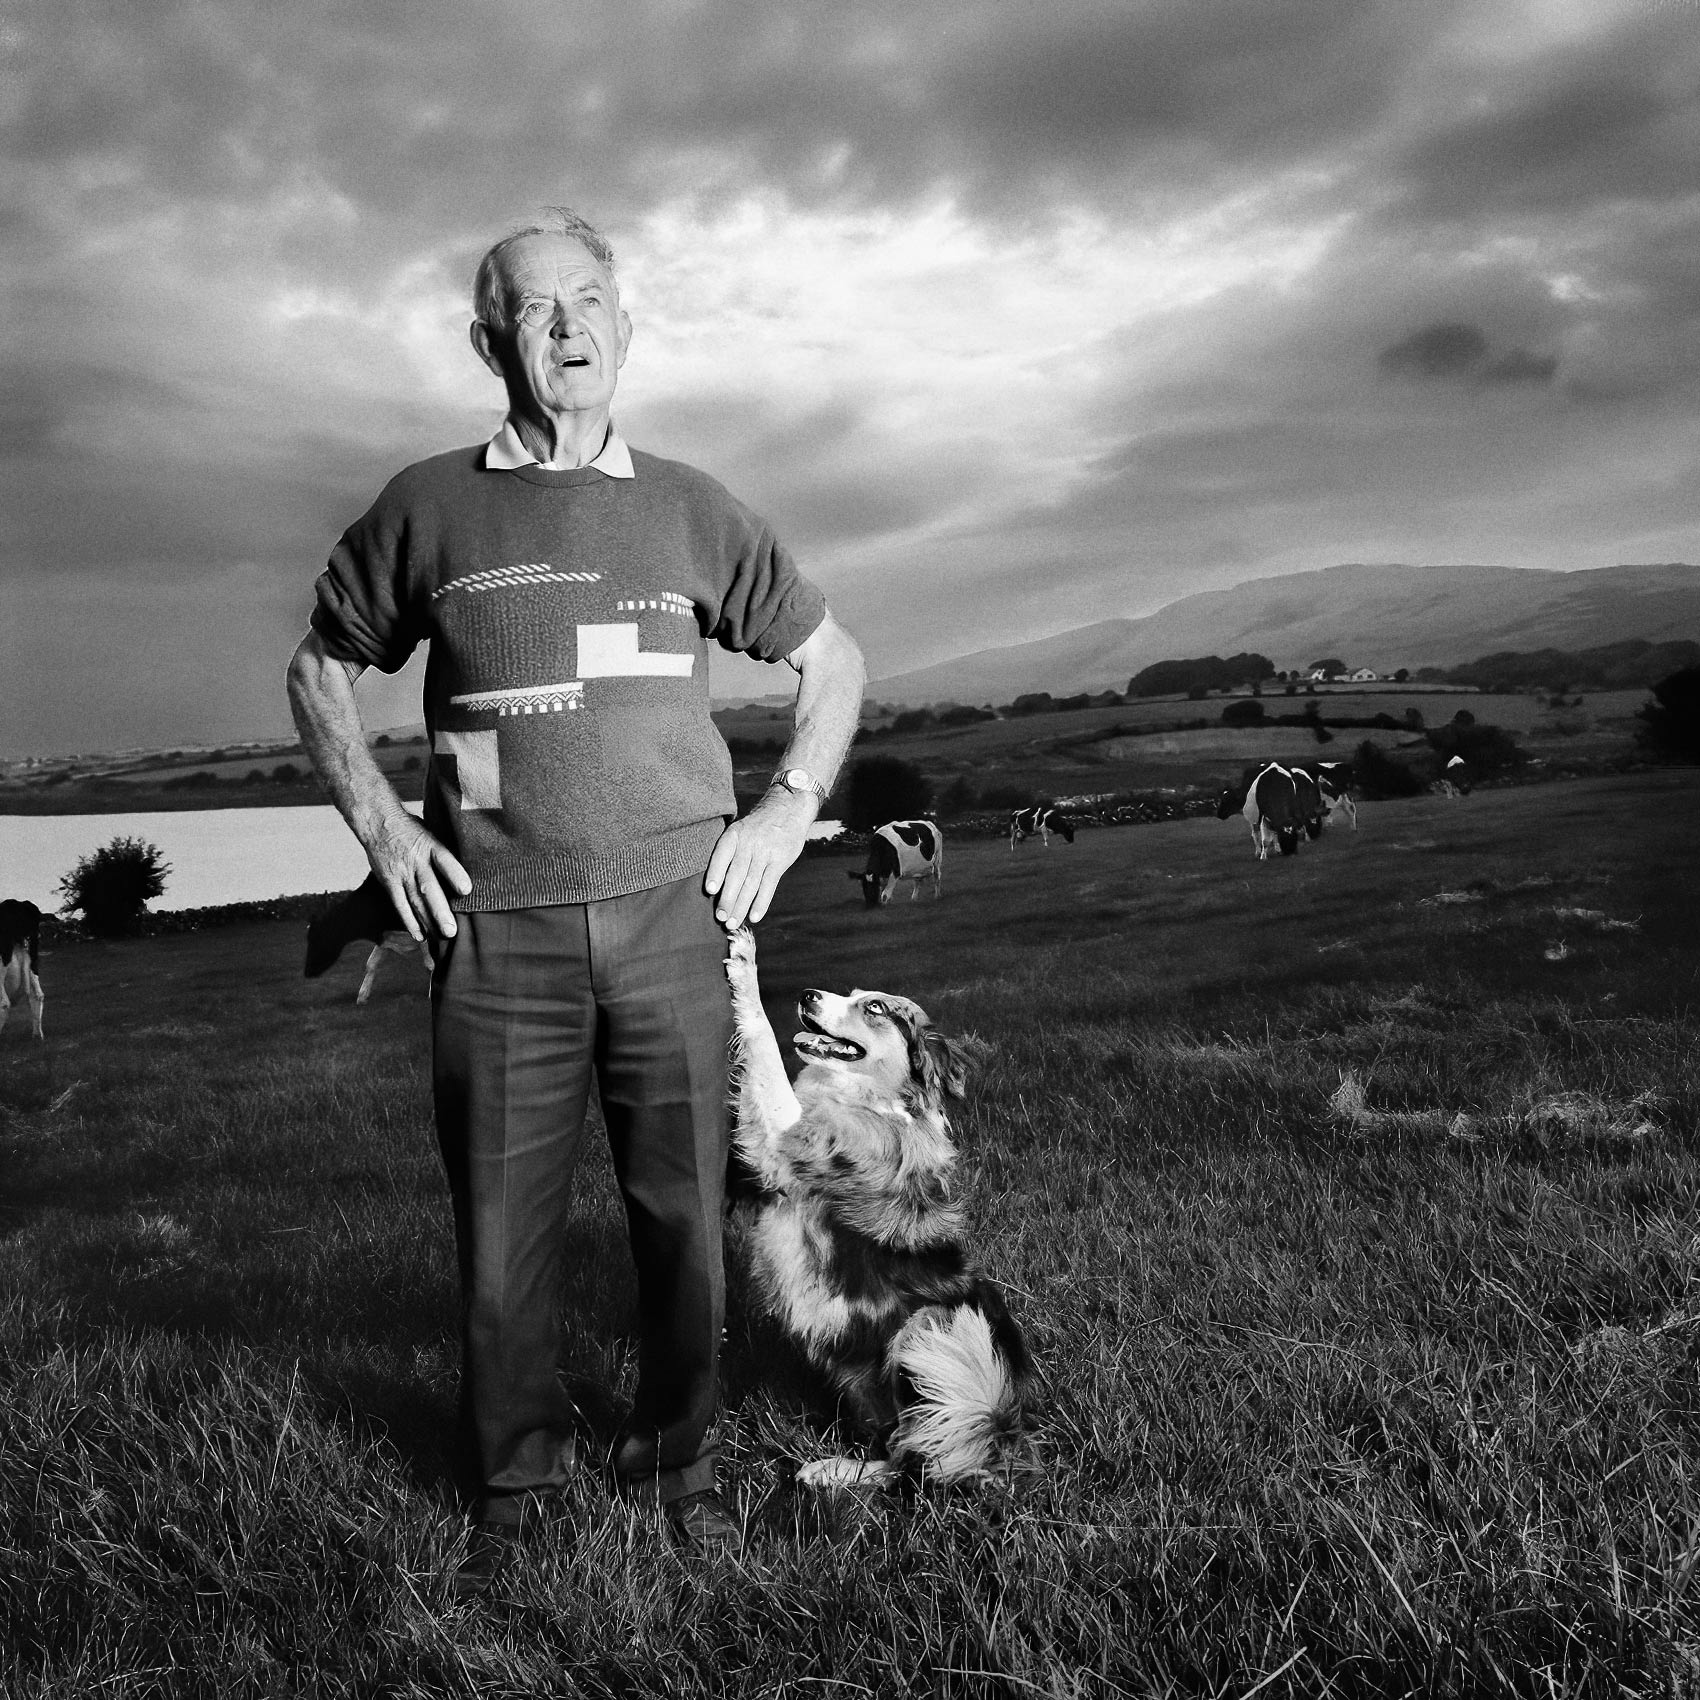 a-irish-farmer-poses-for-a-photo-with-his-trusted-sheep-dog-by-his-side-at-their-farm-outside-of-cork-ireland